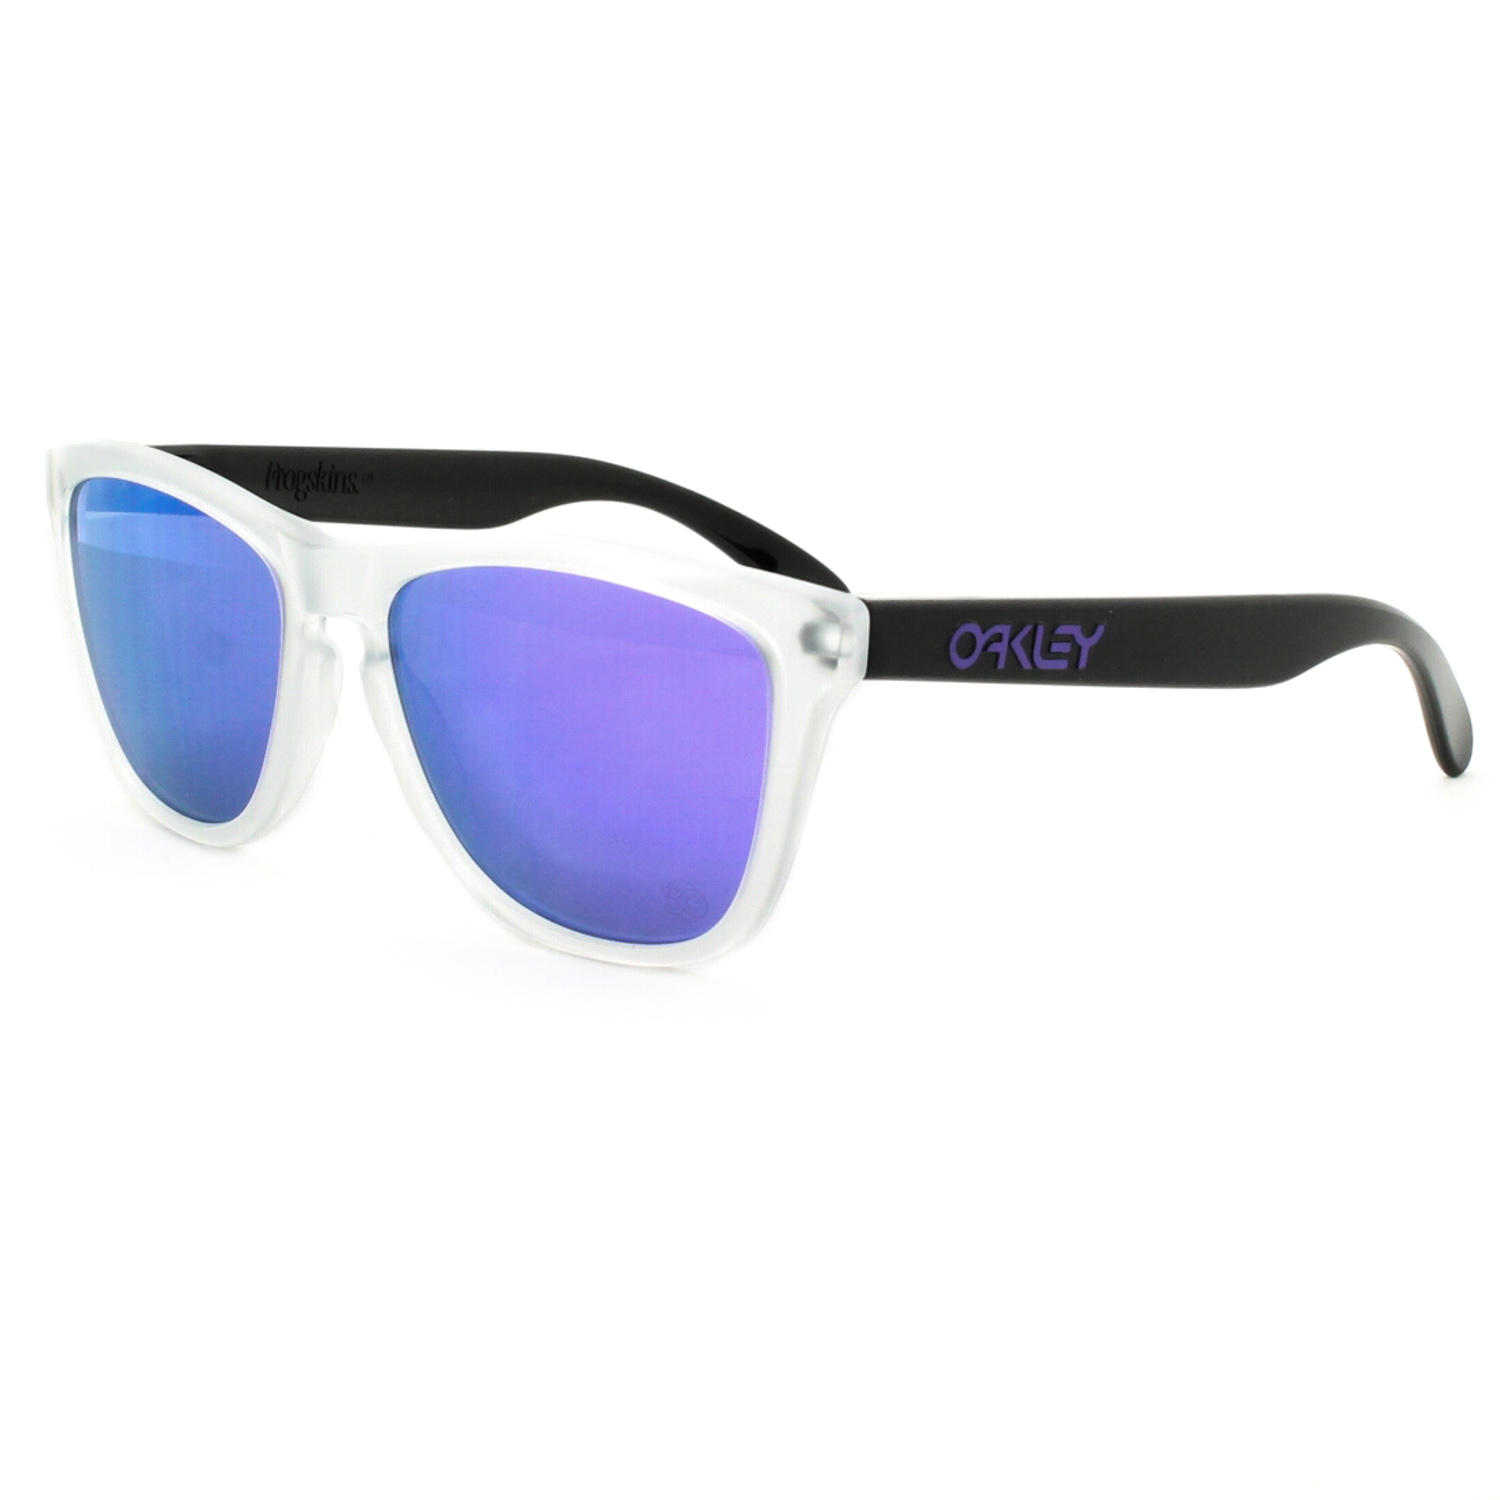 89cfa0be45fcd Lentes Oakley Frogskins Crystal Fire Iridium – Southern California ...